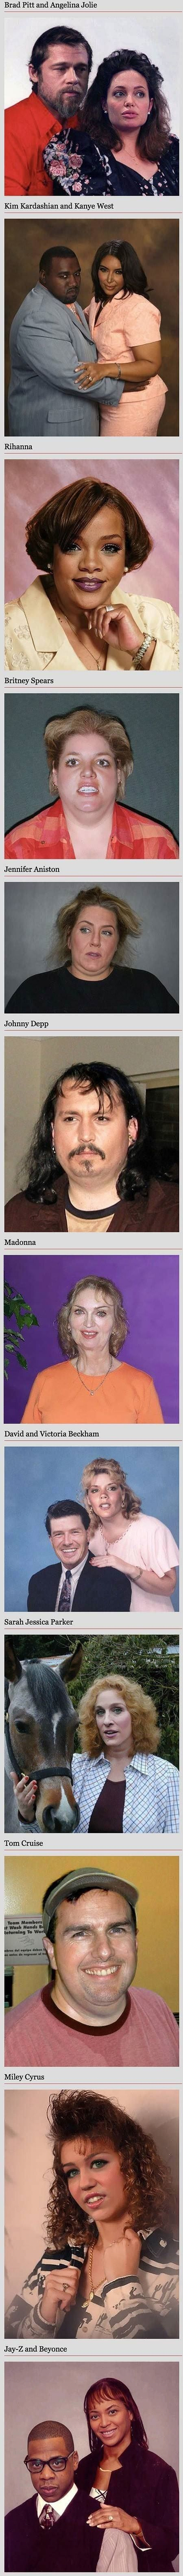 This is so random lol Celebs as ordinary people // funny pictures - funny photos - funny images - funny pics - funny quotes - #lol #humor #funnypictures